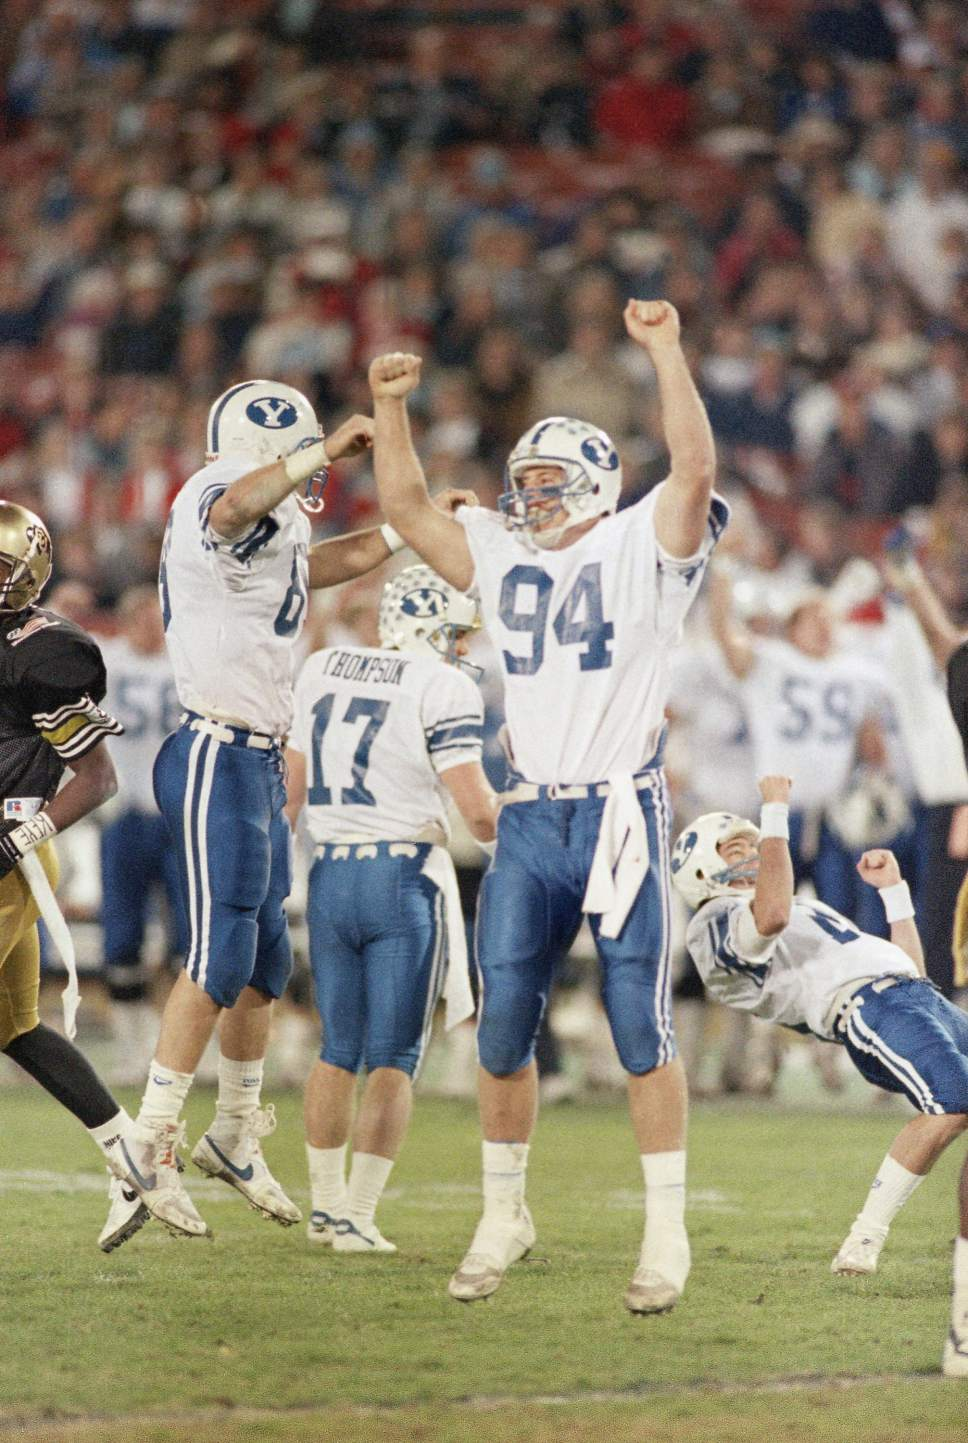 BYU kicker Jason Chaffetz (right) falls to the ground after kicking the winning field goal in the fourth quarter against Colorado at the Freedom Bowl in Anaheim, California, on Thursday, night, Dec. 30, 1988. Teammates Travis McBeth (left), Pat Thompson (17) and Chris Smith (94) also celebrate. BYU defeated Colorado 20-17. (AP Photo/Reed Saxon)